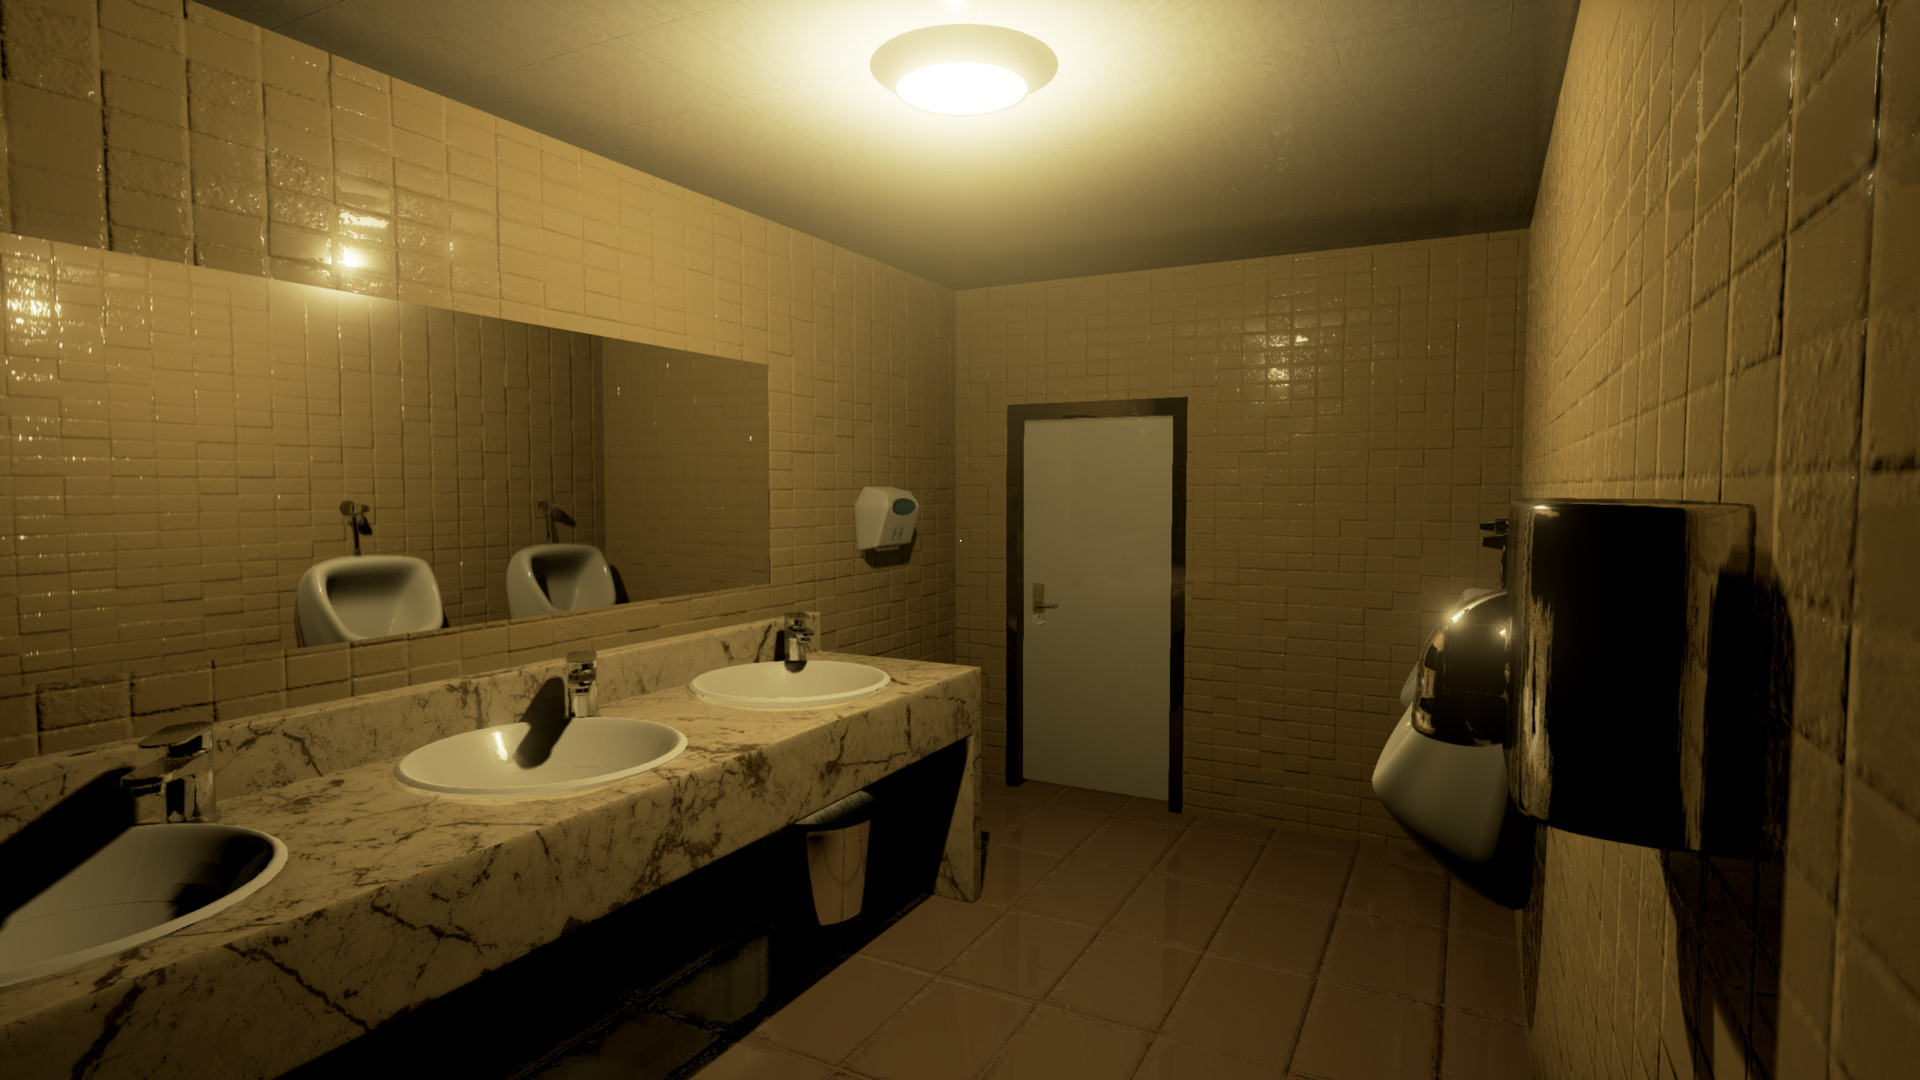 ArtStation - HORROR GAME - UNREAL ENGINE 4 PROJECT